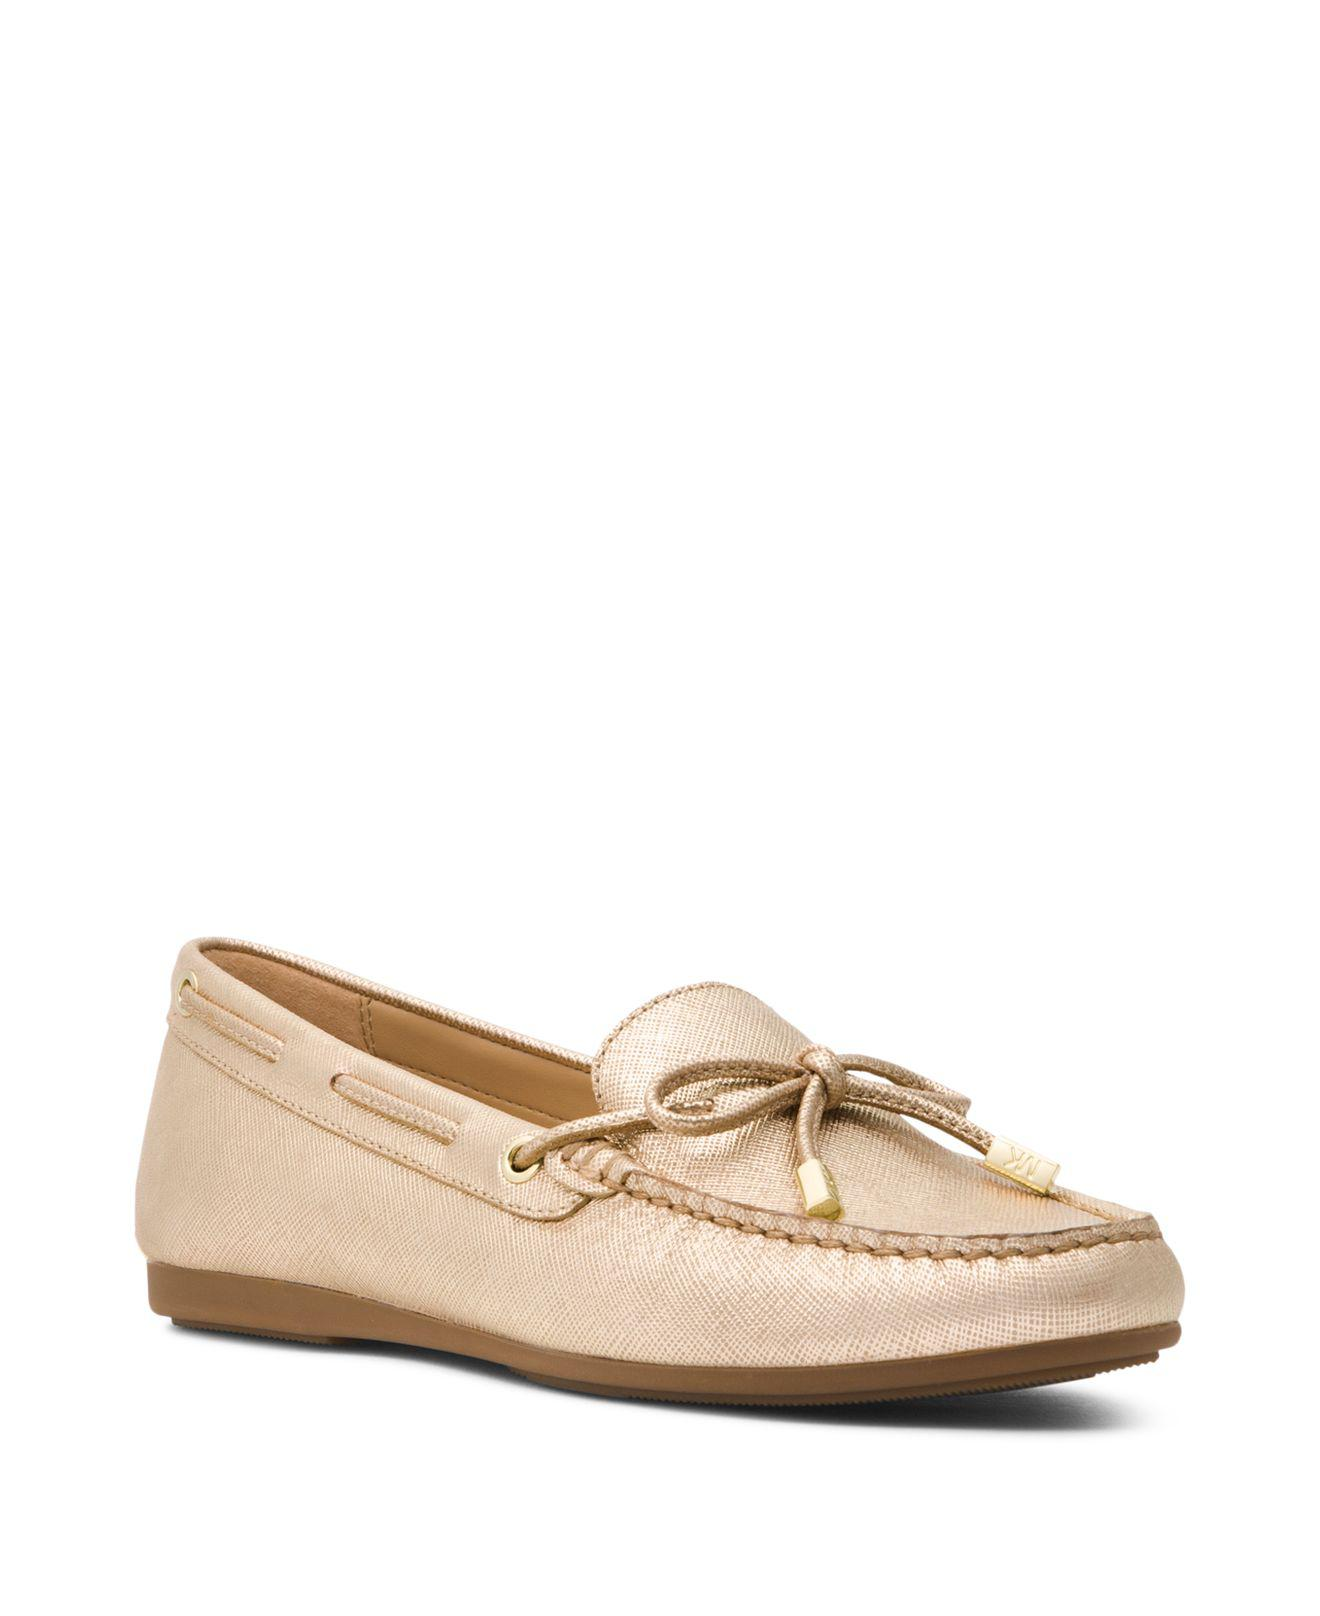 Michael Kors Women's Sutton Leather Moccasins ZpPTVi